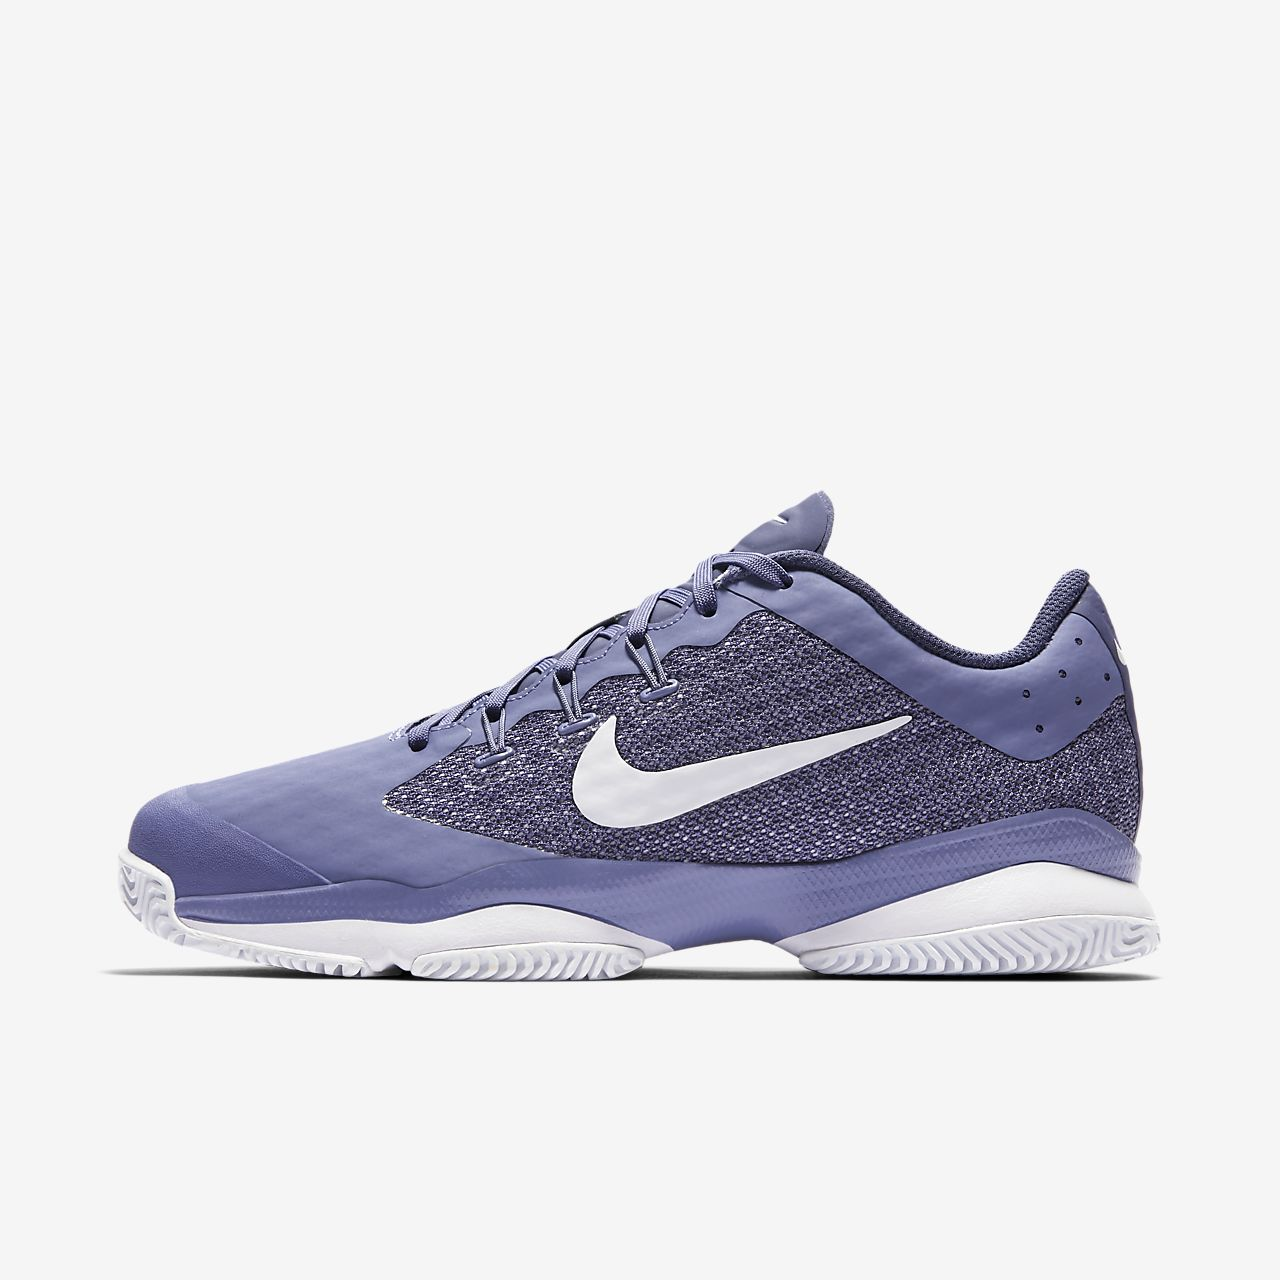 ... NikeCourt Air Zoom Ultra Hard Court Women's Tennis Shoe